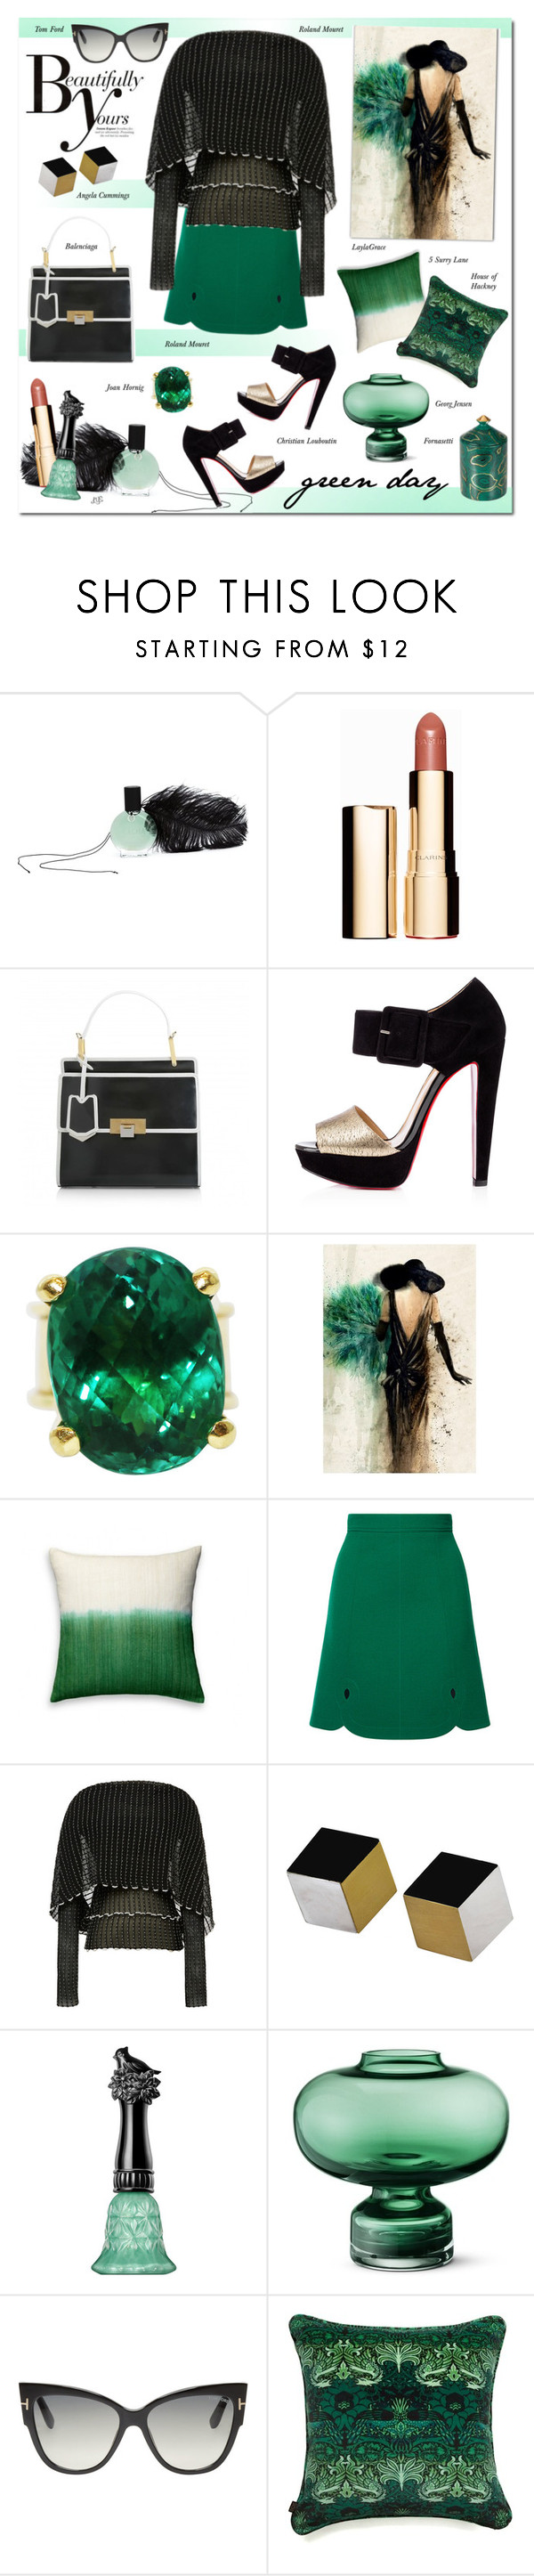 """""""Untitled #951"""" by louise-stuart ❤ liked on Polyvore featuring interior, interiors, interior design, home, home decor, interior decorating, L'Oeil du Vert, Sonam Life, Clarins and Balenciaga"""